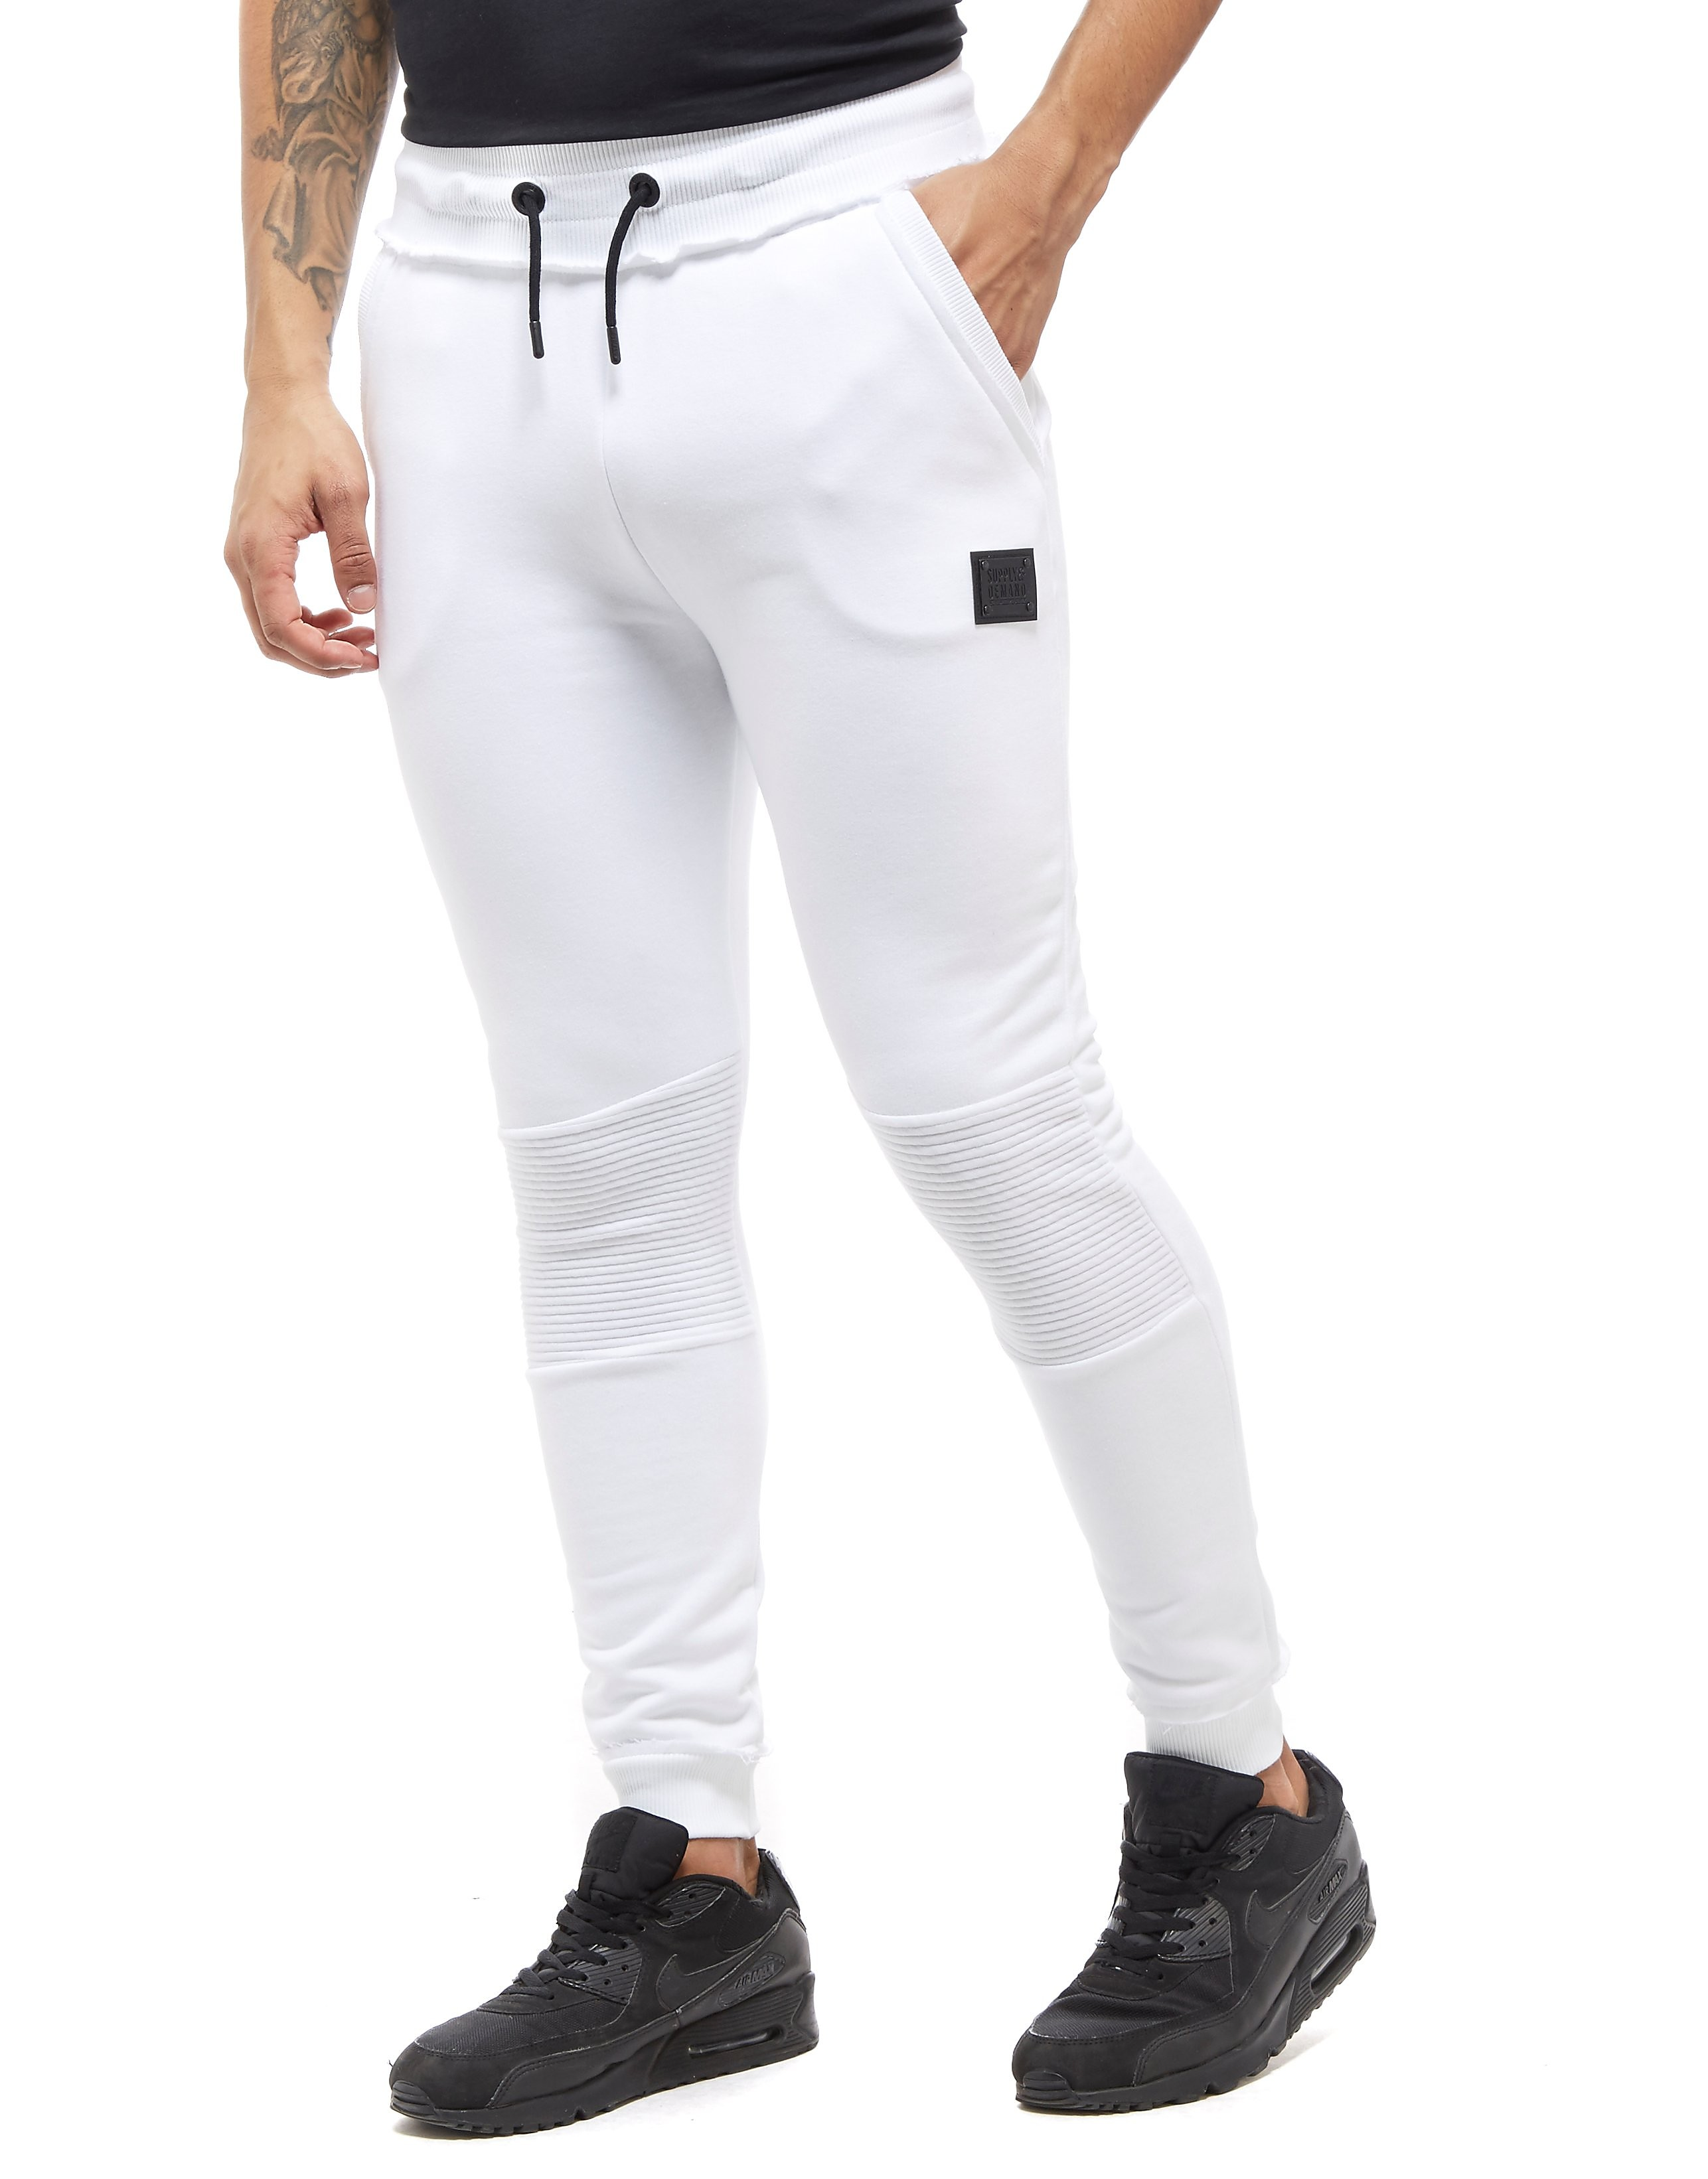 Supply & Demand Pantalon Detroit Homme  - Only at JD - blanc, blanc